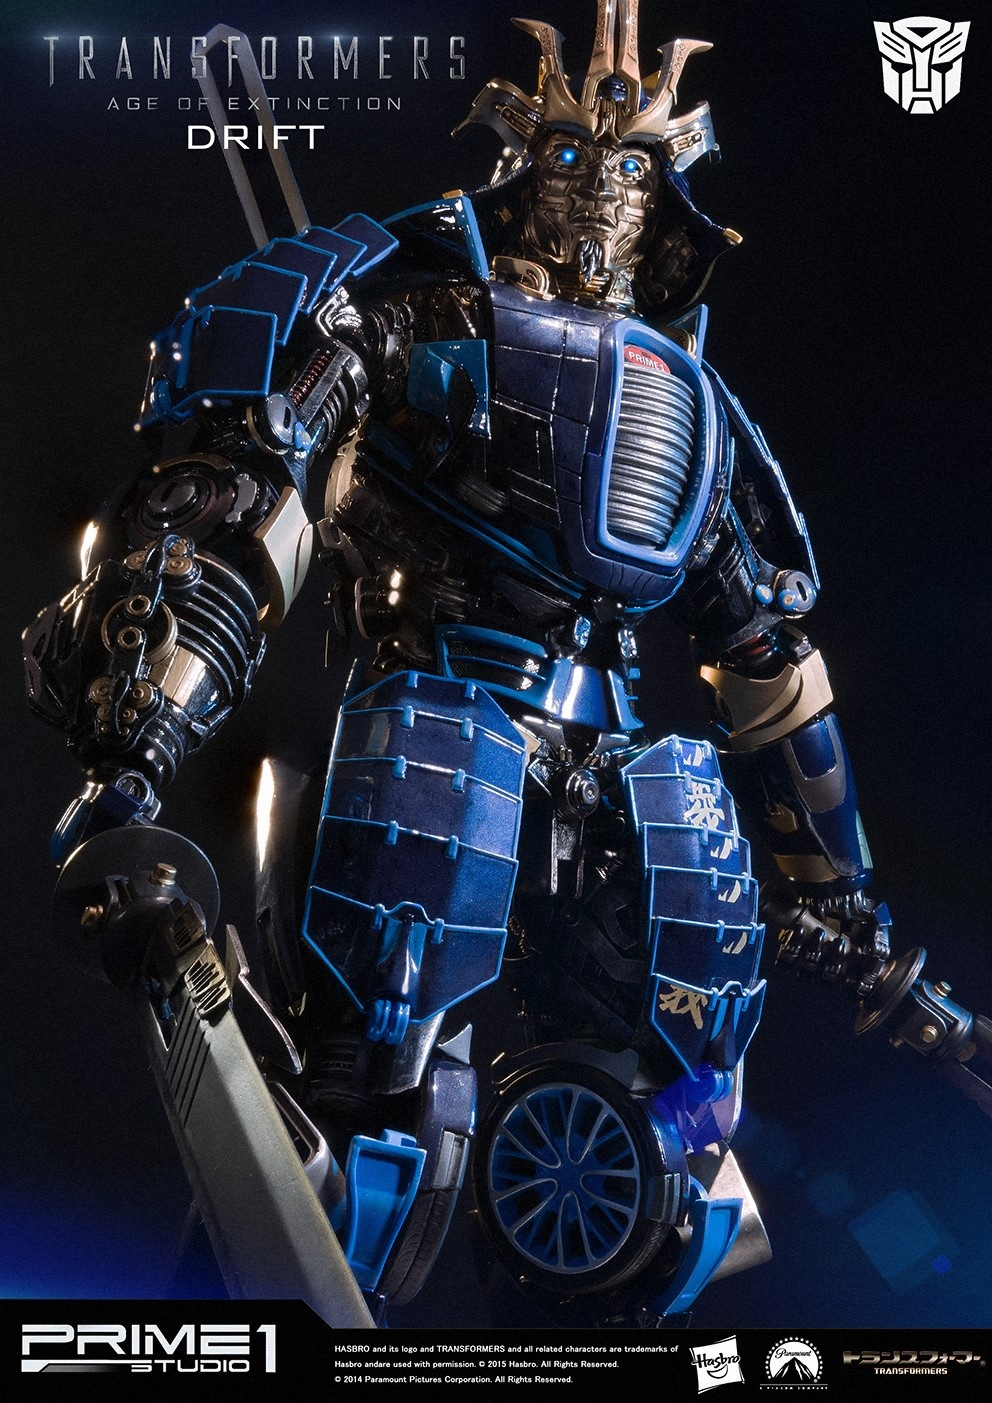 Statues des Films Transformers (articulé, non transformable) ― Par Prime1Studio, M3 Studio, Concept Zone, Super Fans Group, Soap Studio, Soldier Story Toys, etc - Page 3 860830image1423753374